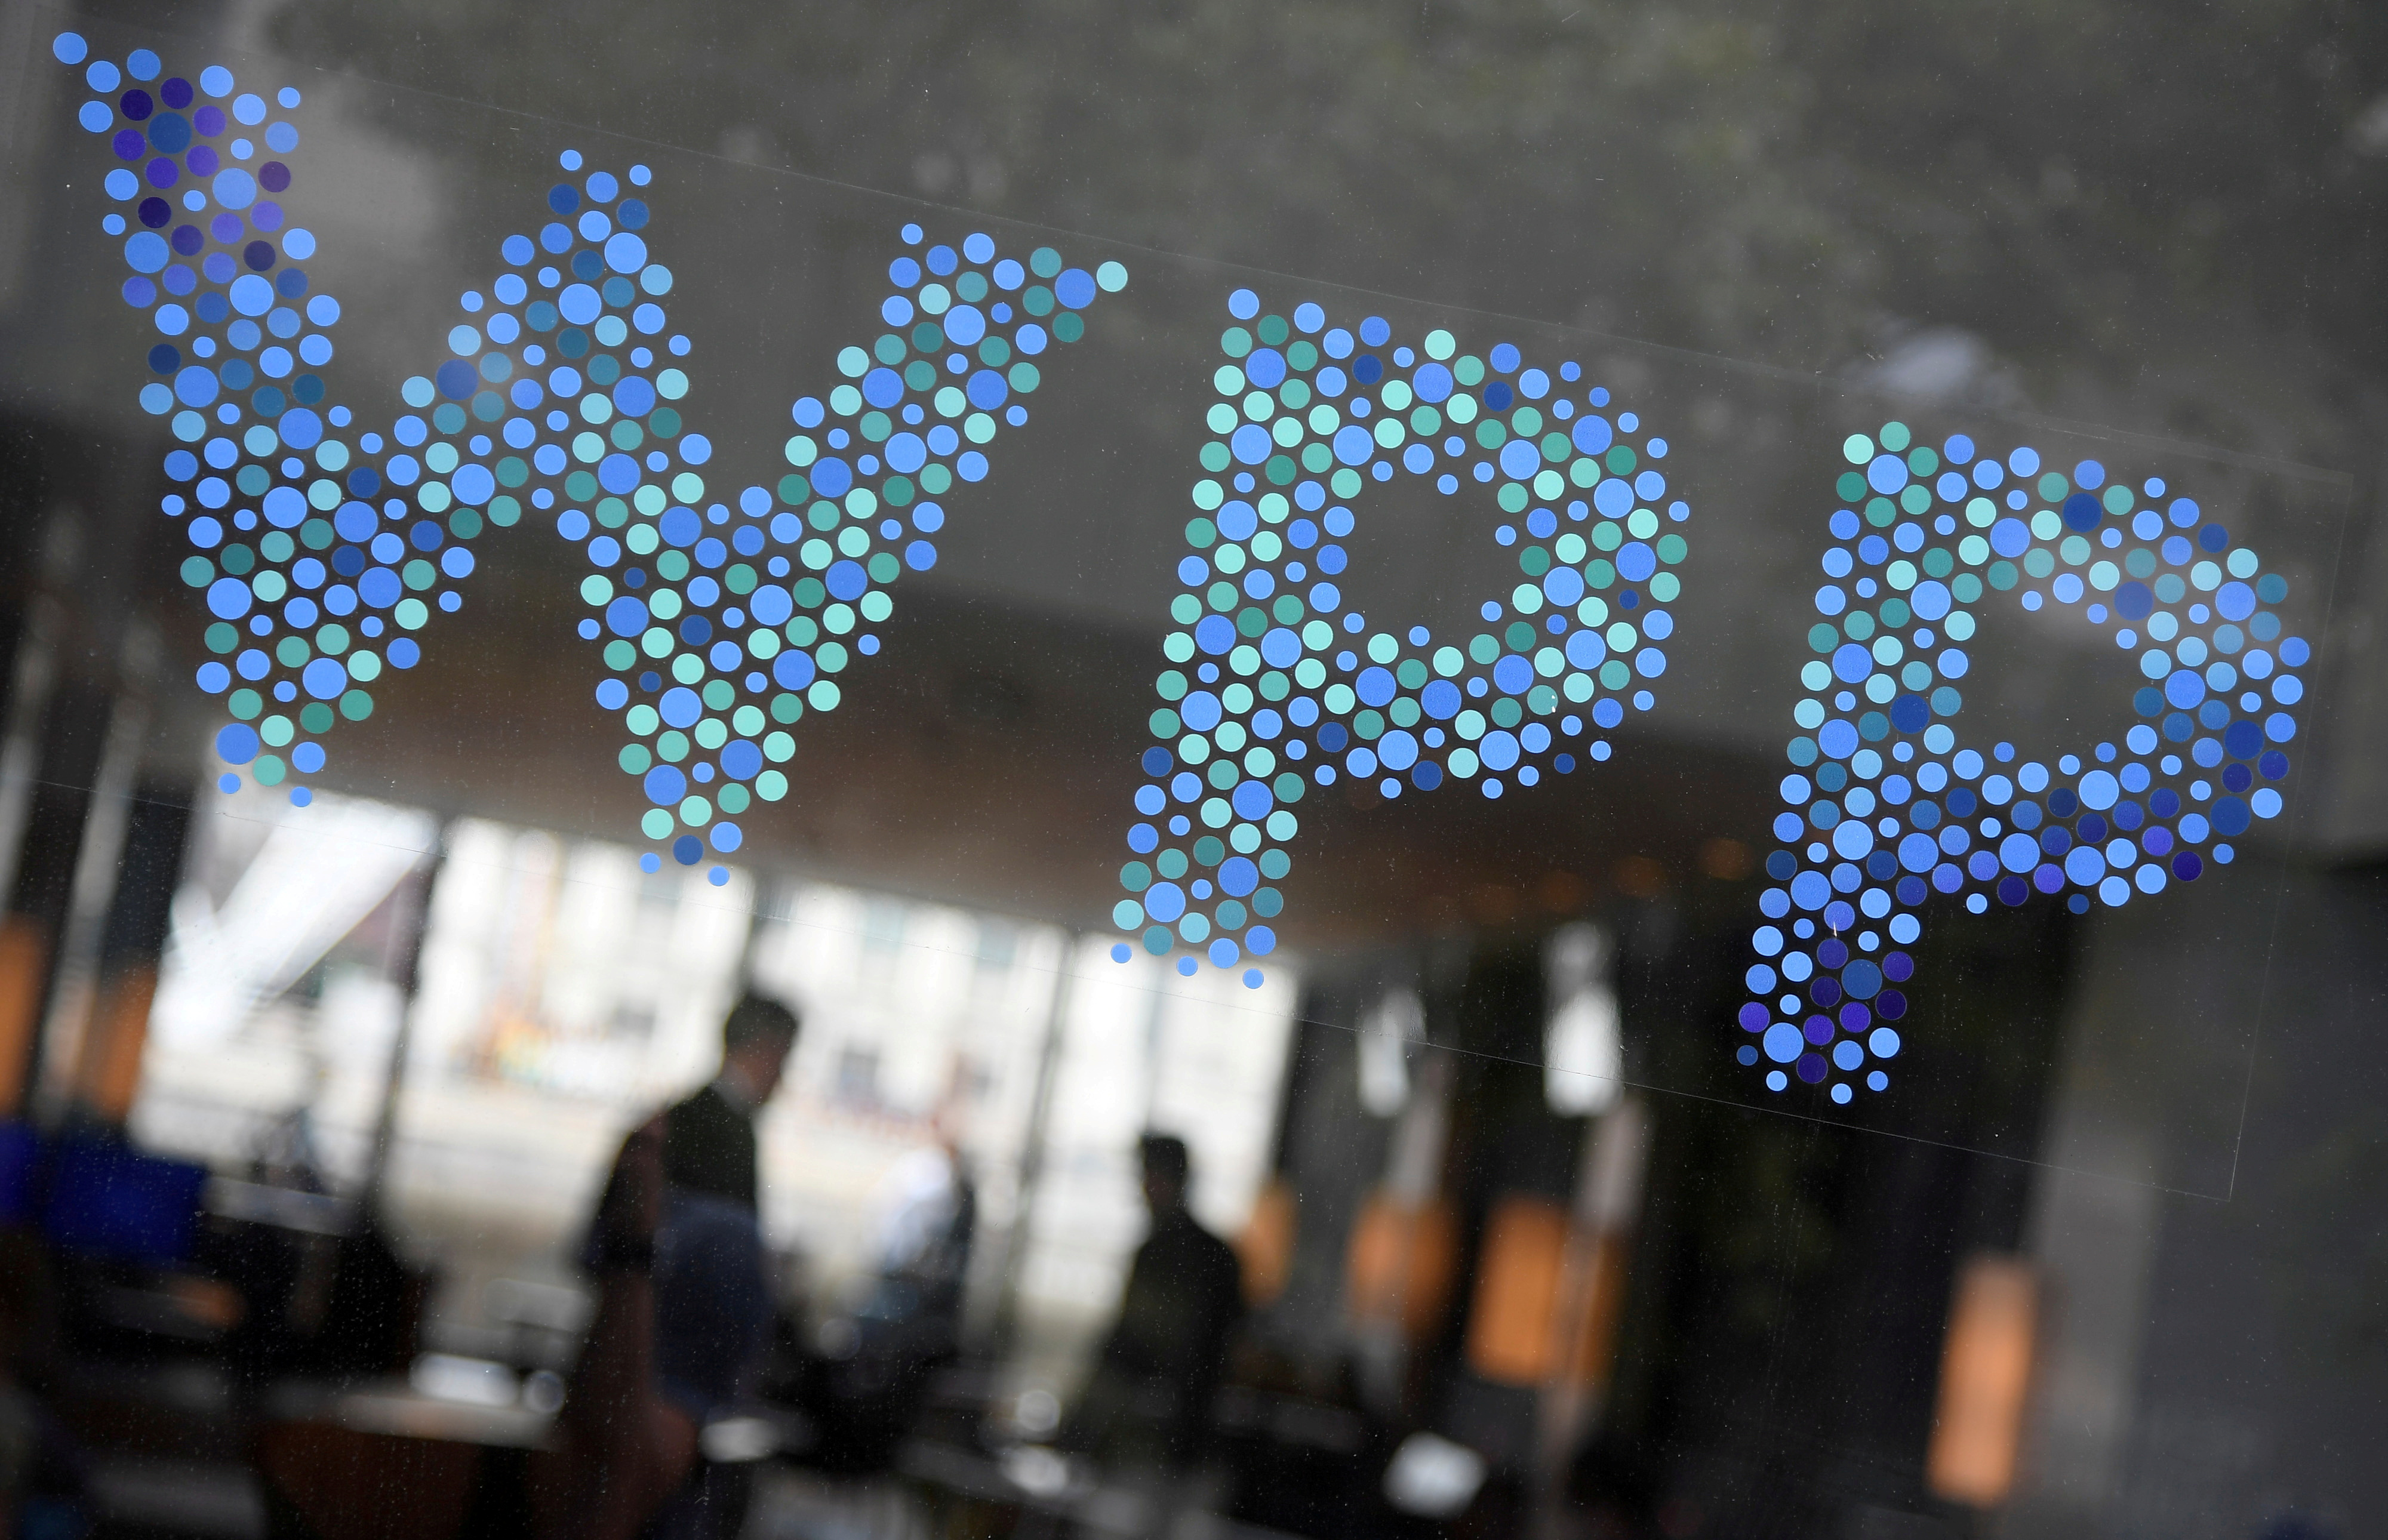 Branding signage for WPP, the largest global advertising and public relations agency at their offices in London, Britain, July 17, 2019. REUTERS/Toby Melville/File Photo